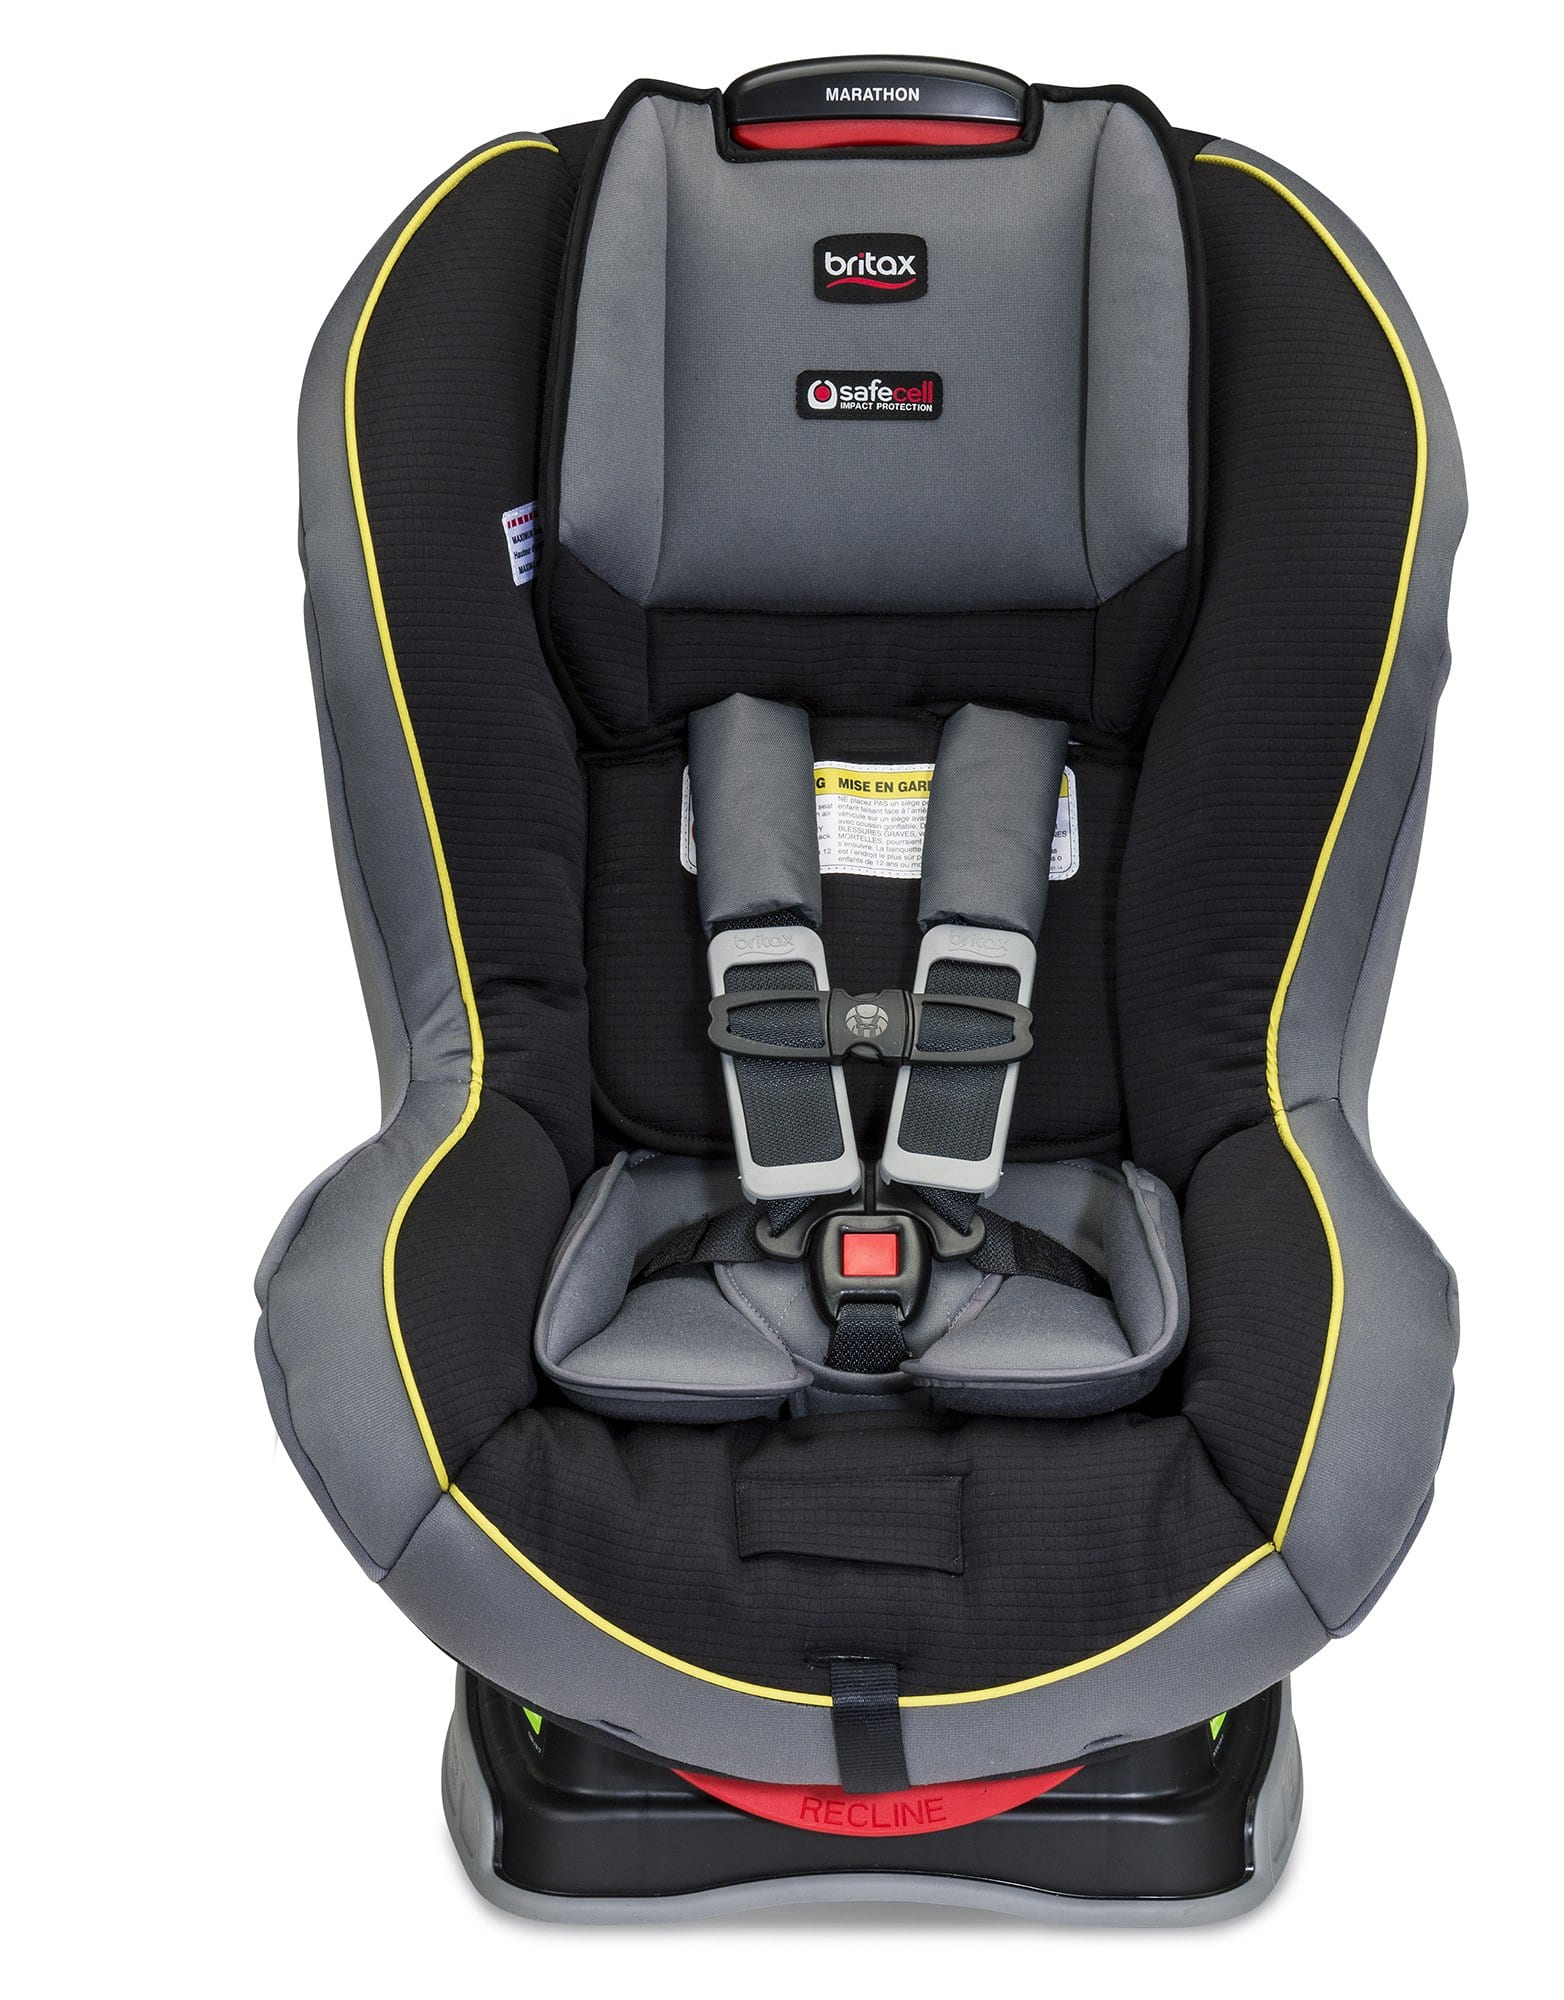 Britax car seats for sale - starting Parkway belt positioning booster $99